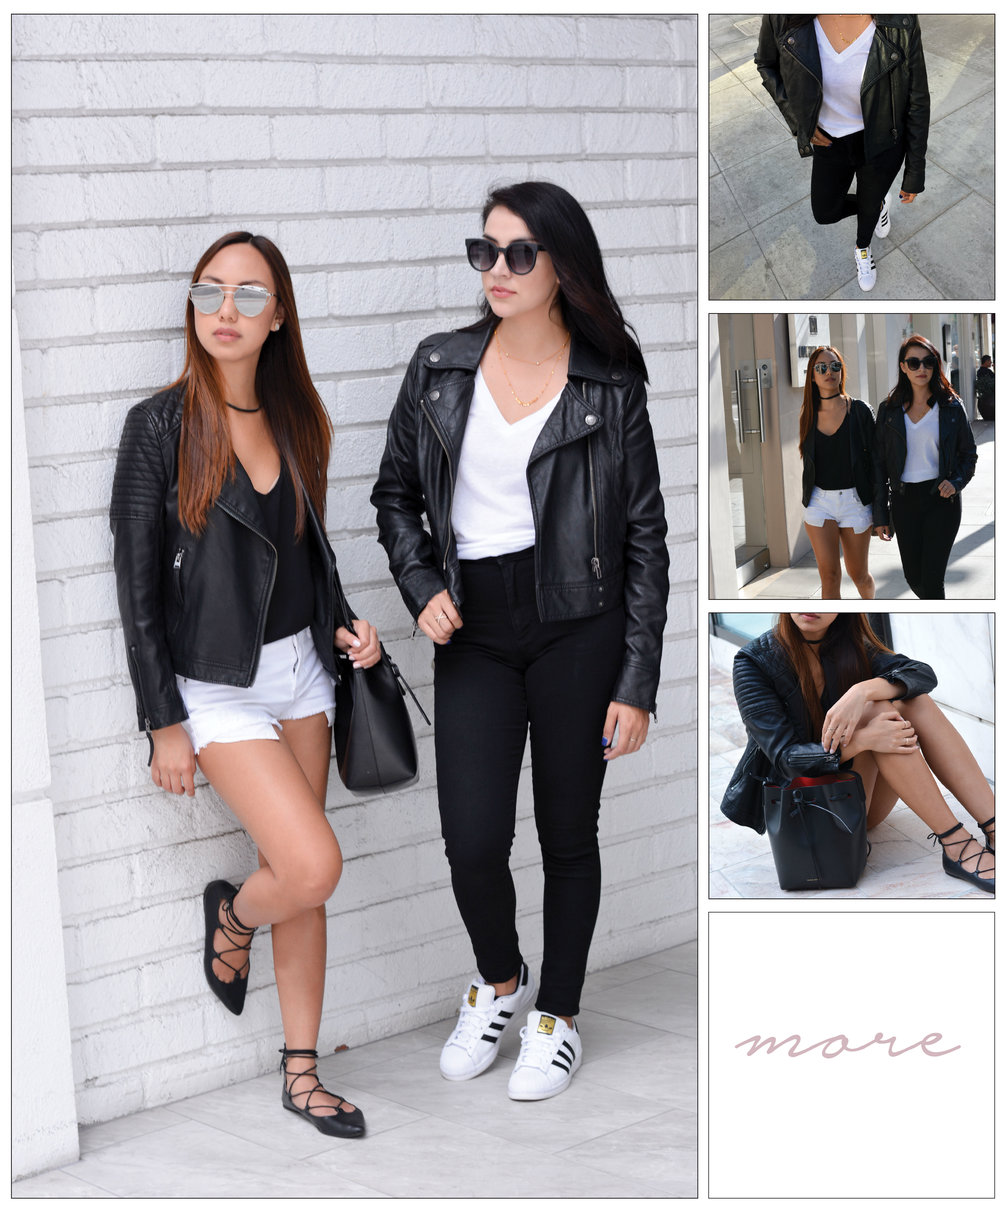 Did you think fashion month was over? Think again. Here at PDA it's always fashion month. This time, the street style set is Rodeo Drive, a place where you can find the latest in trends.